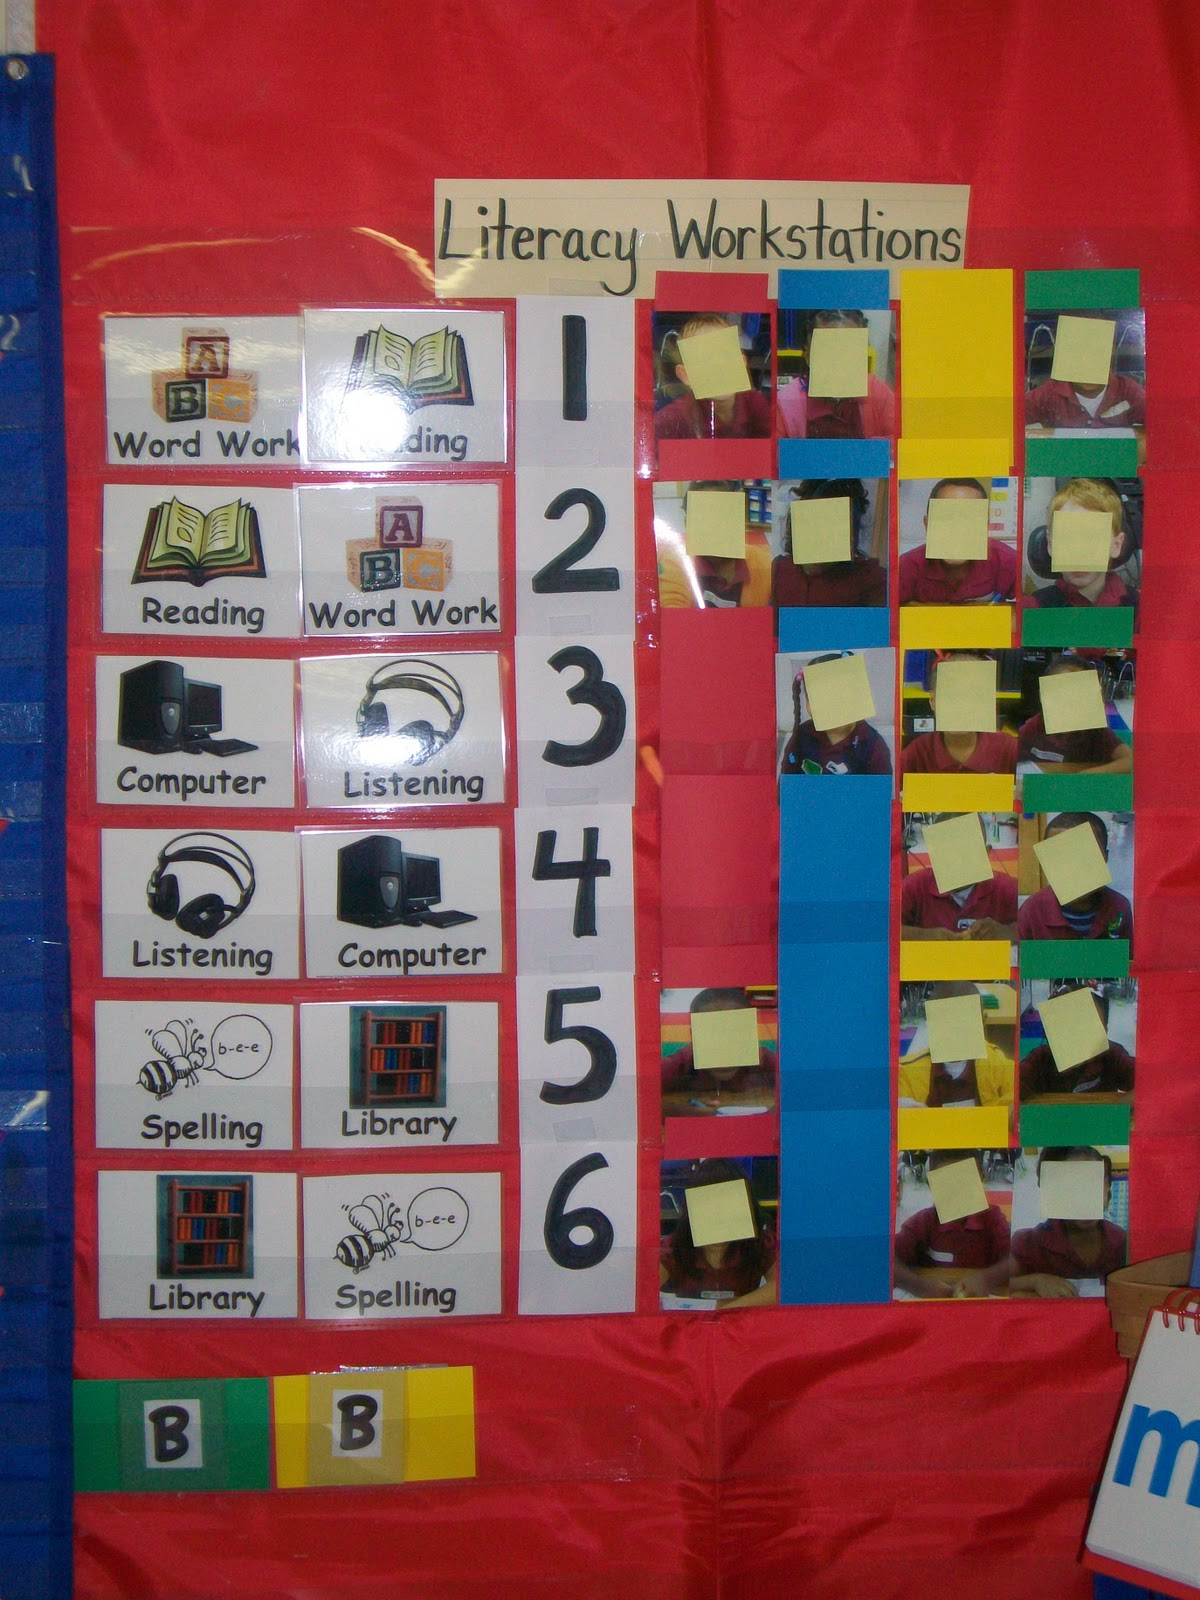 Classroom Workstation Ideas ~ First grade school box literacy workstation rotation chart